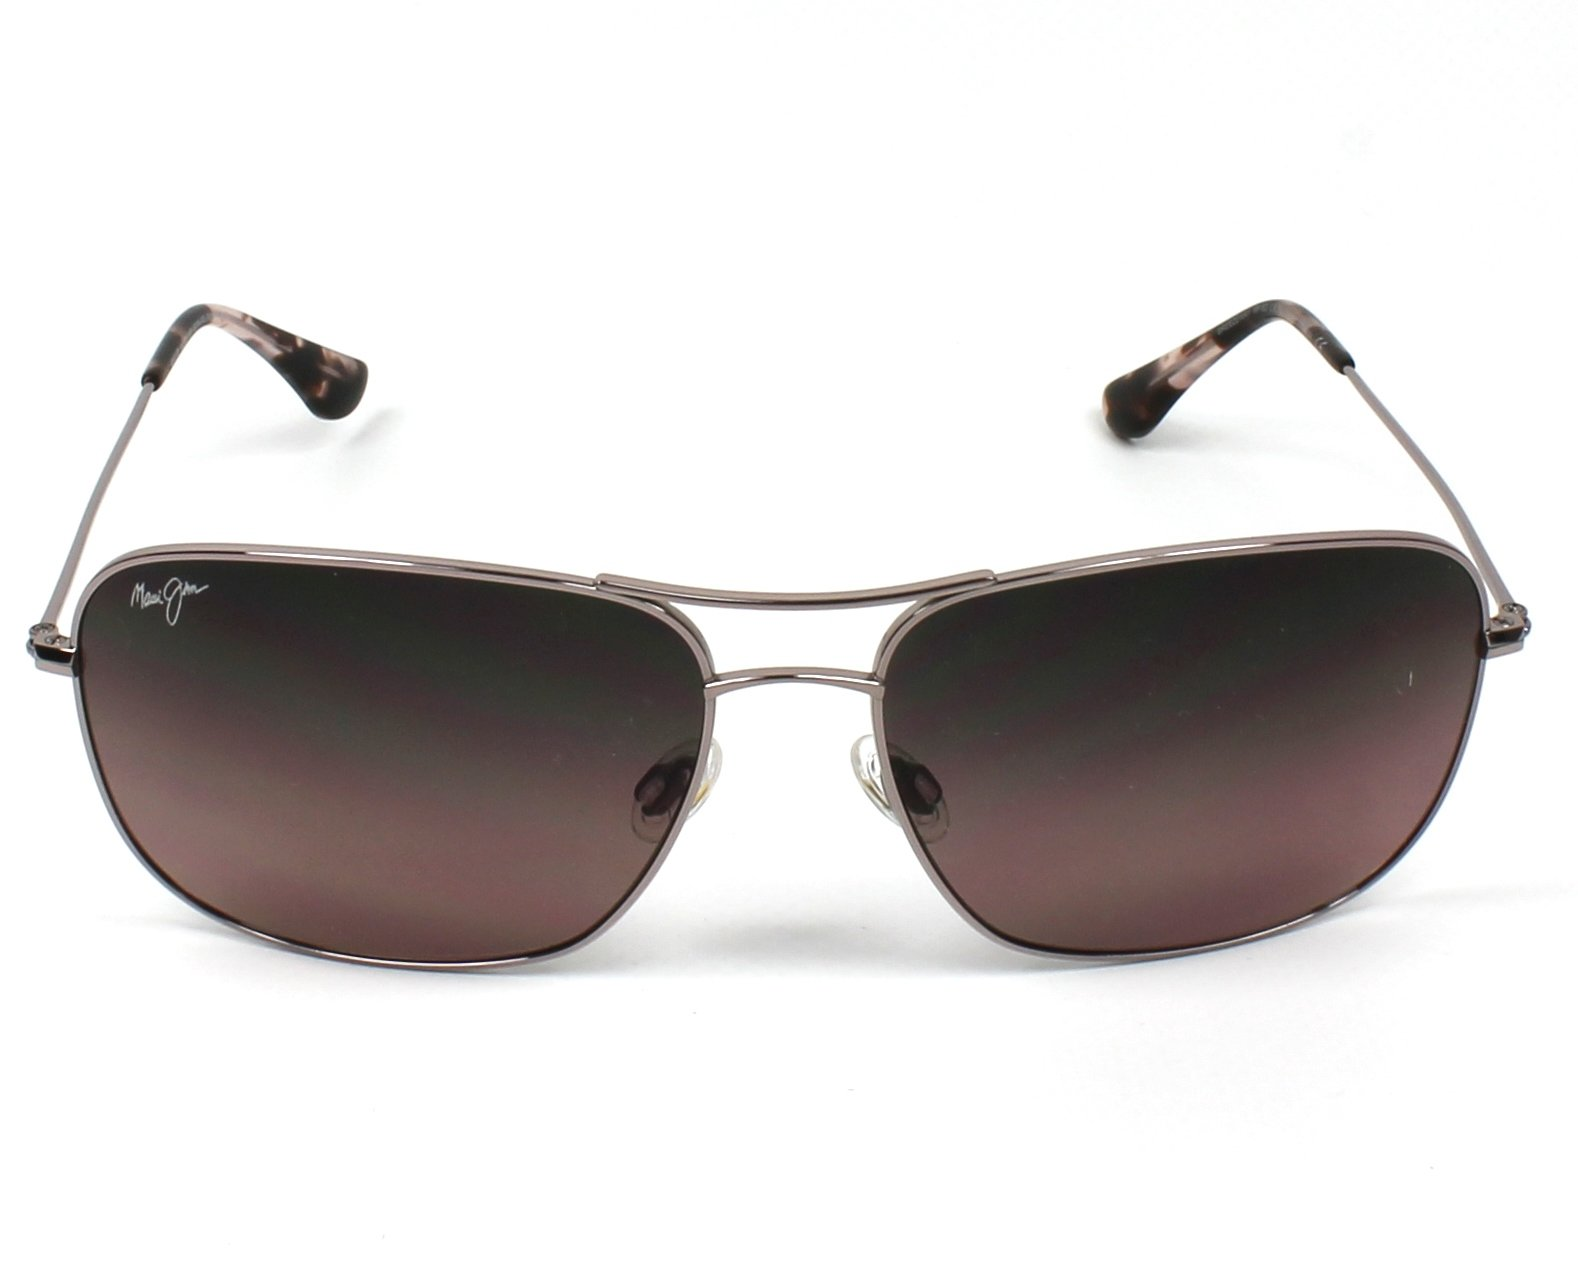 8a18f996aaa Sunglasses Maui Jim RS-773 16R - Silver front view